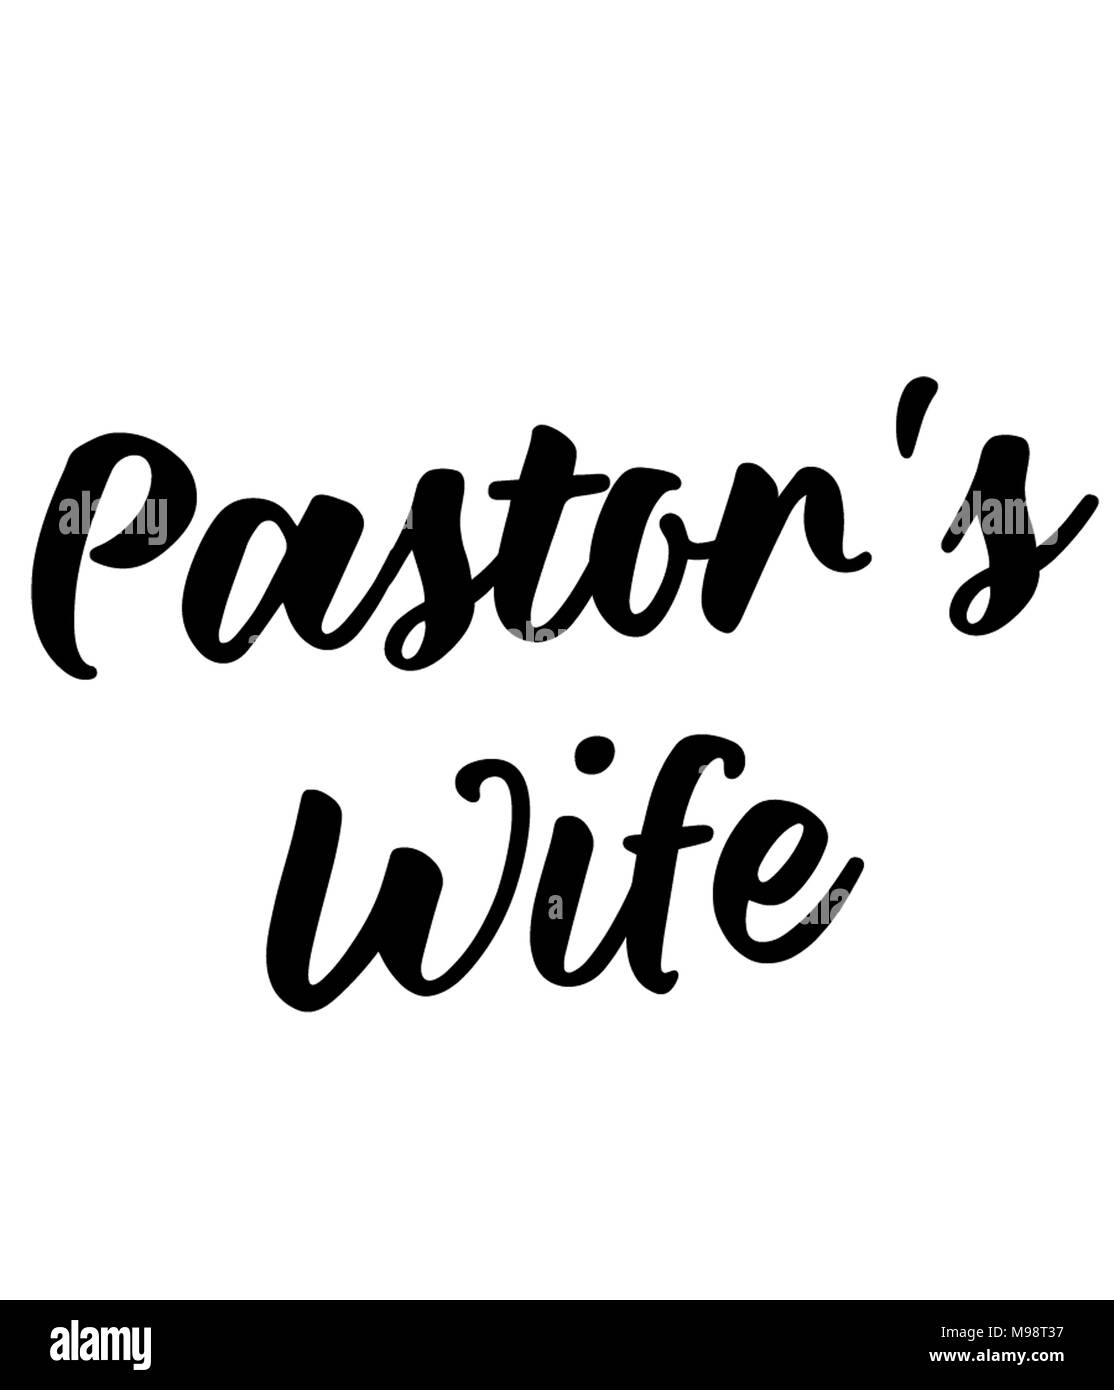 Pastor's Wife - print design and lettering in black font. - Stock Image